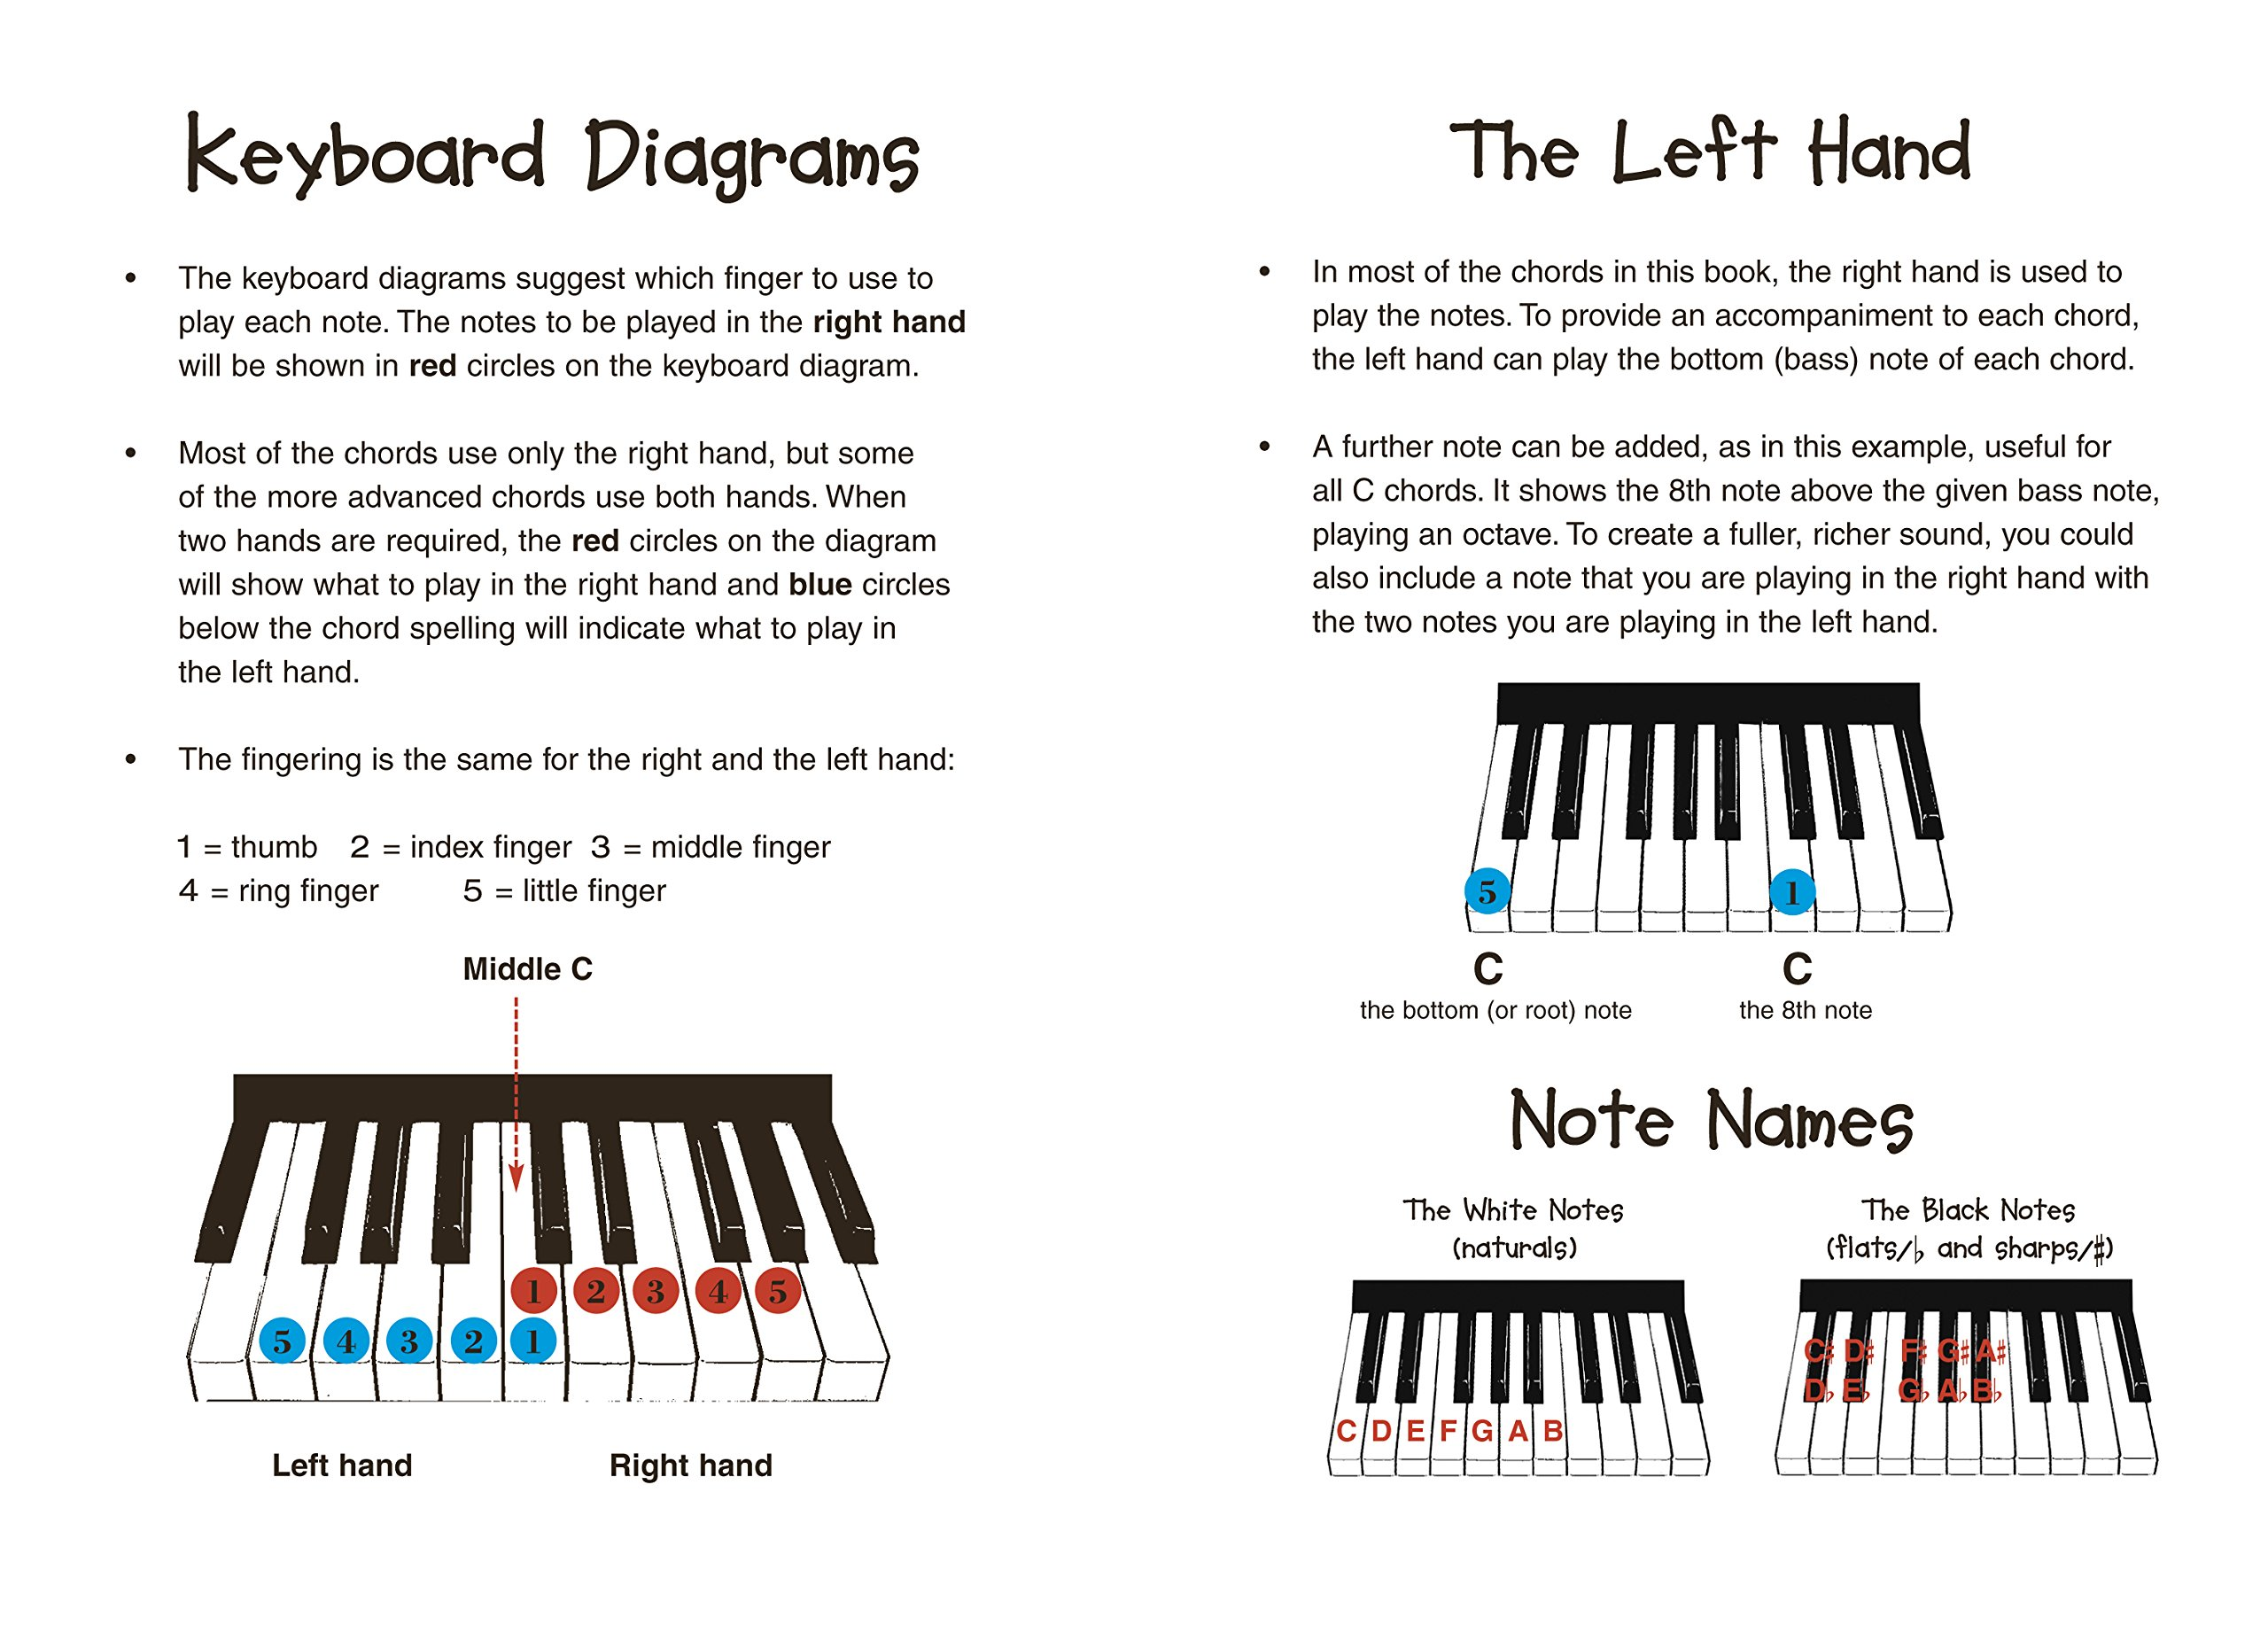 Chords for kids easy to read easy to play for guitar keyboard chords for kids easy to read easy to play for guitar keyboard easy to use amazon jake jackson 9781847866554 books hexwebz Choice Image